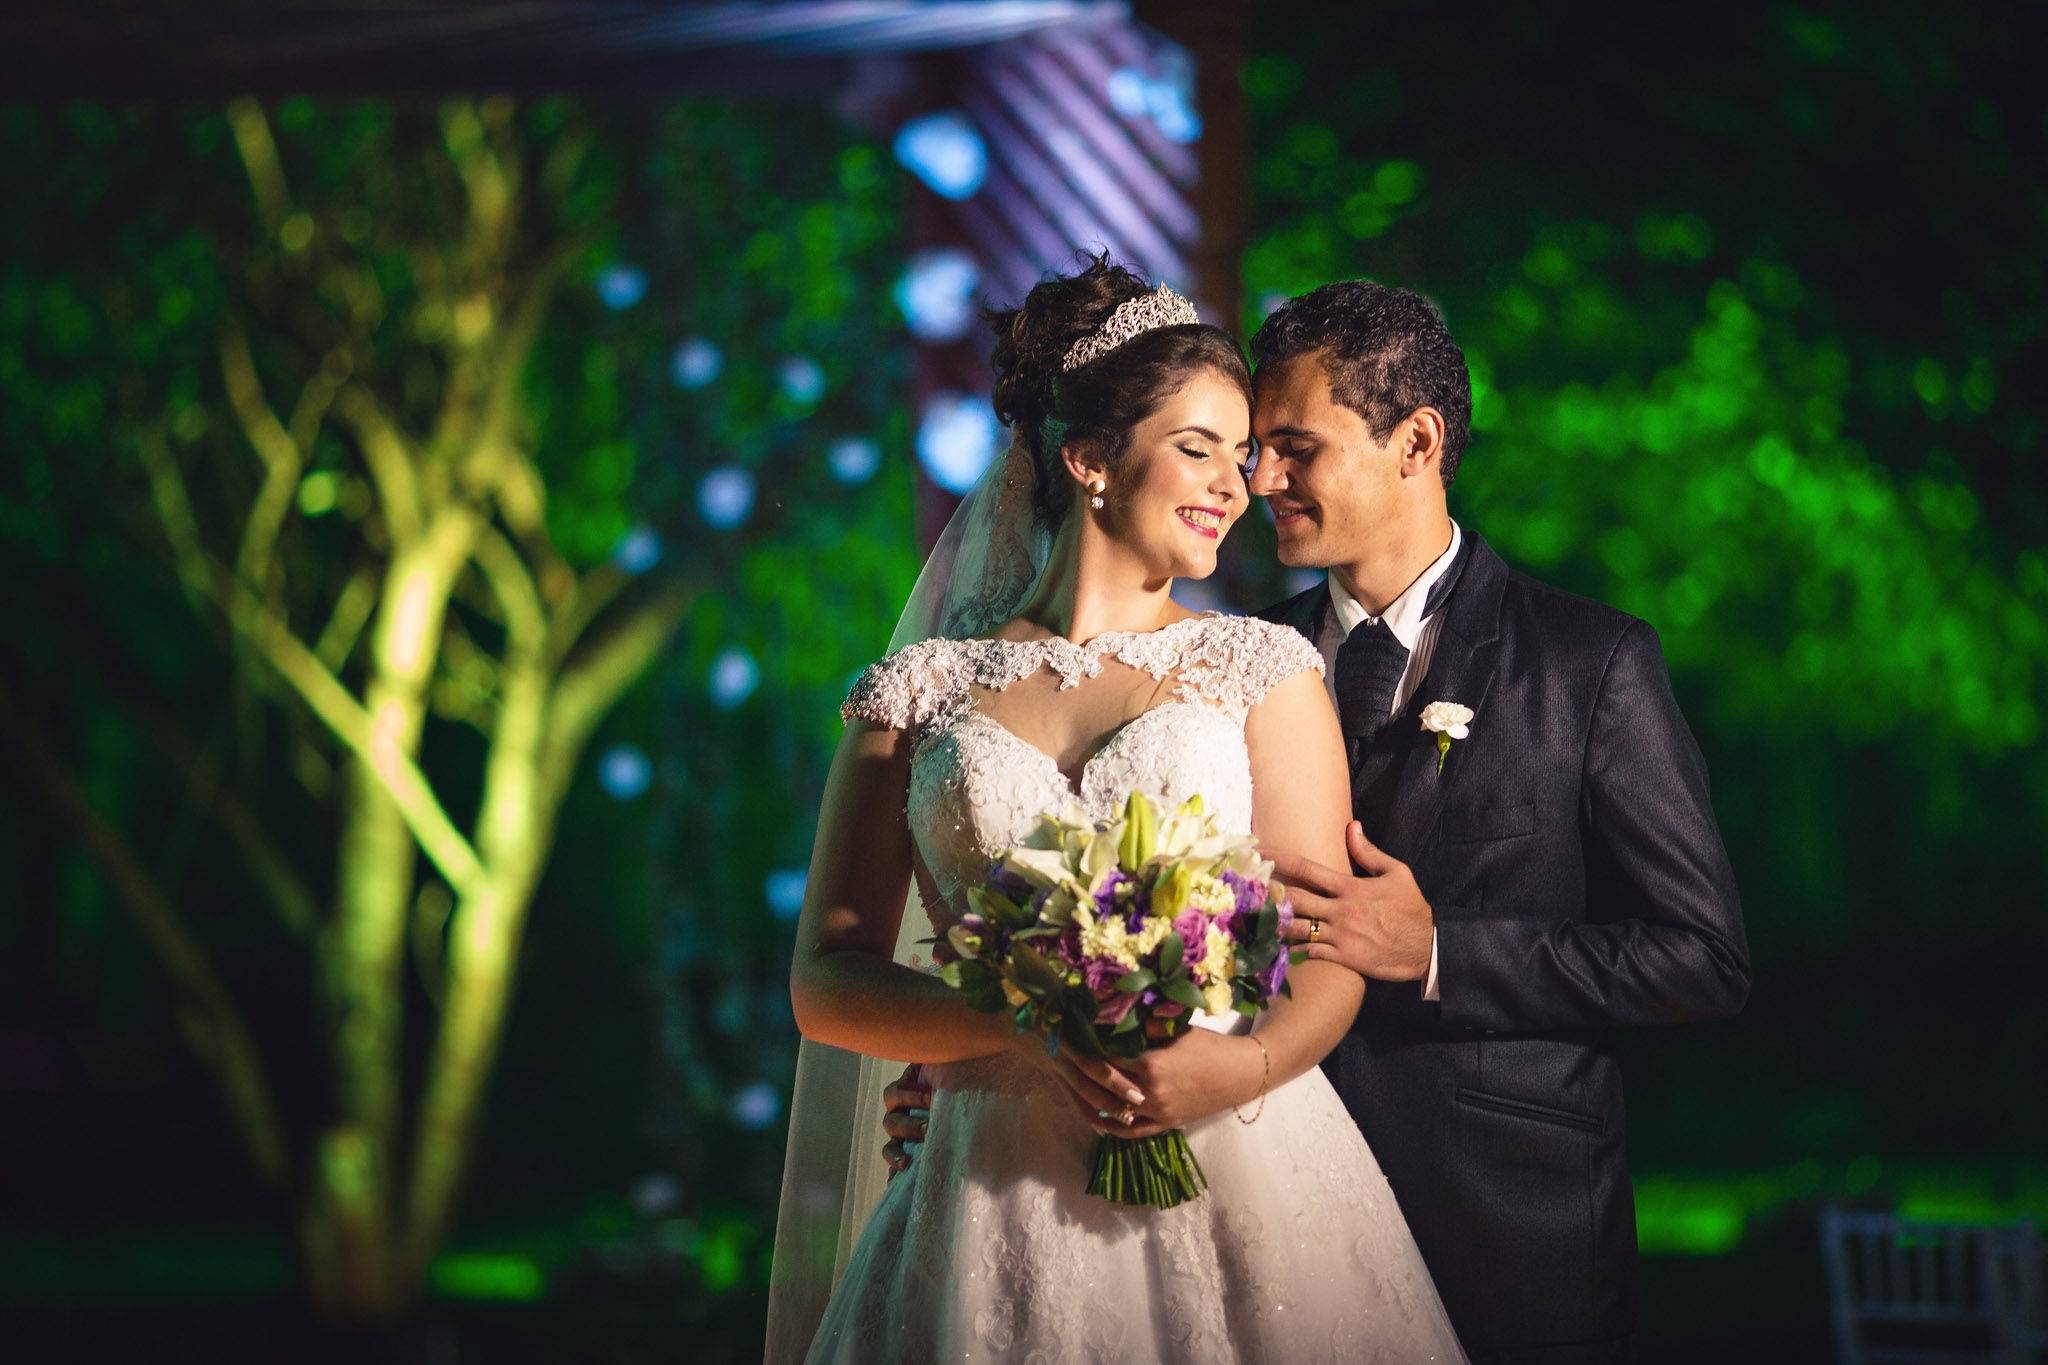 wedding-travellers-destination-wedding-photography-brazil-paraguay